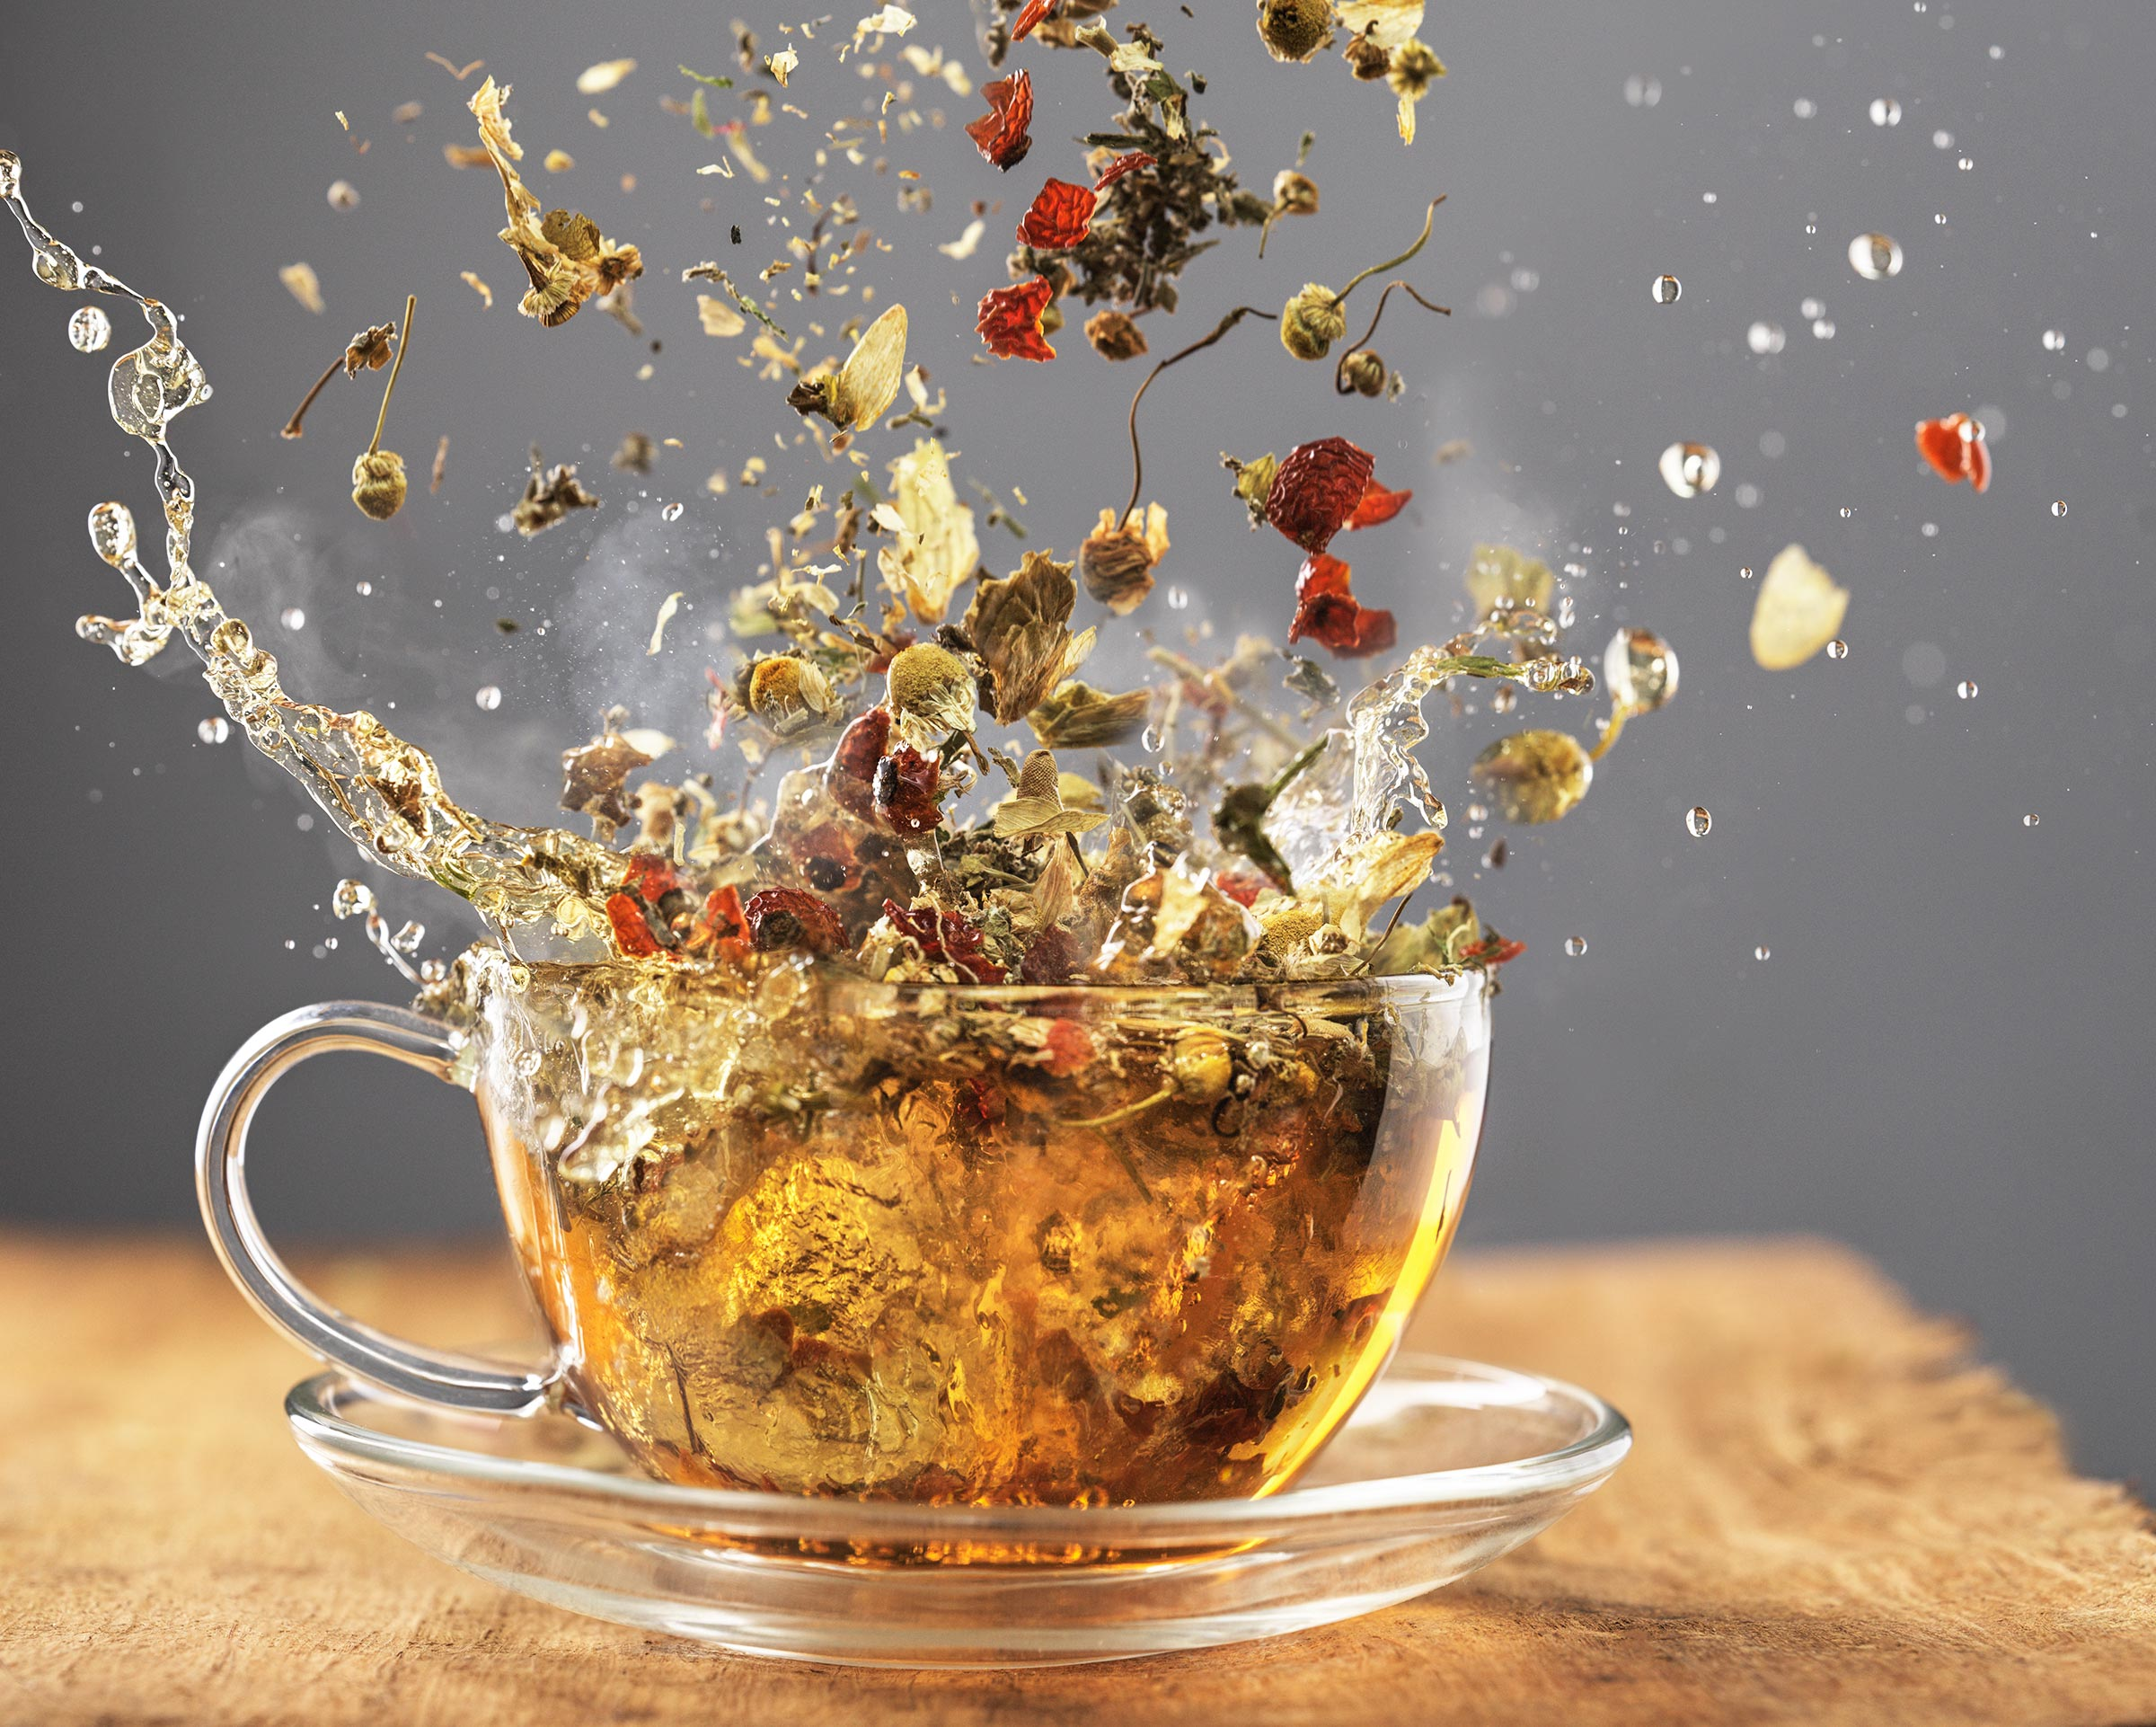 Tea Splash | Steve Hansen Seattle Food Photographer